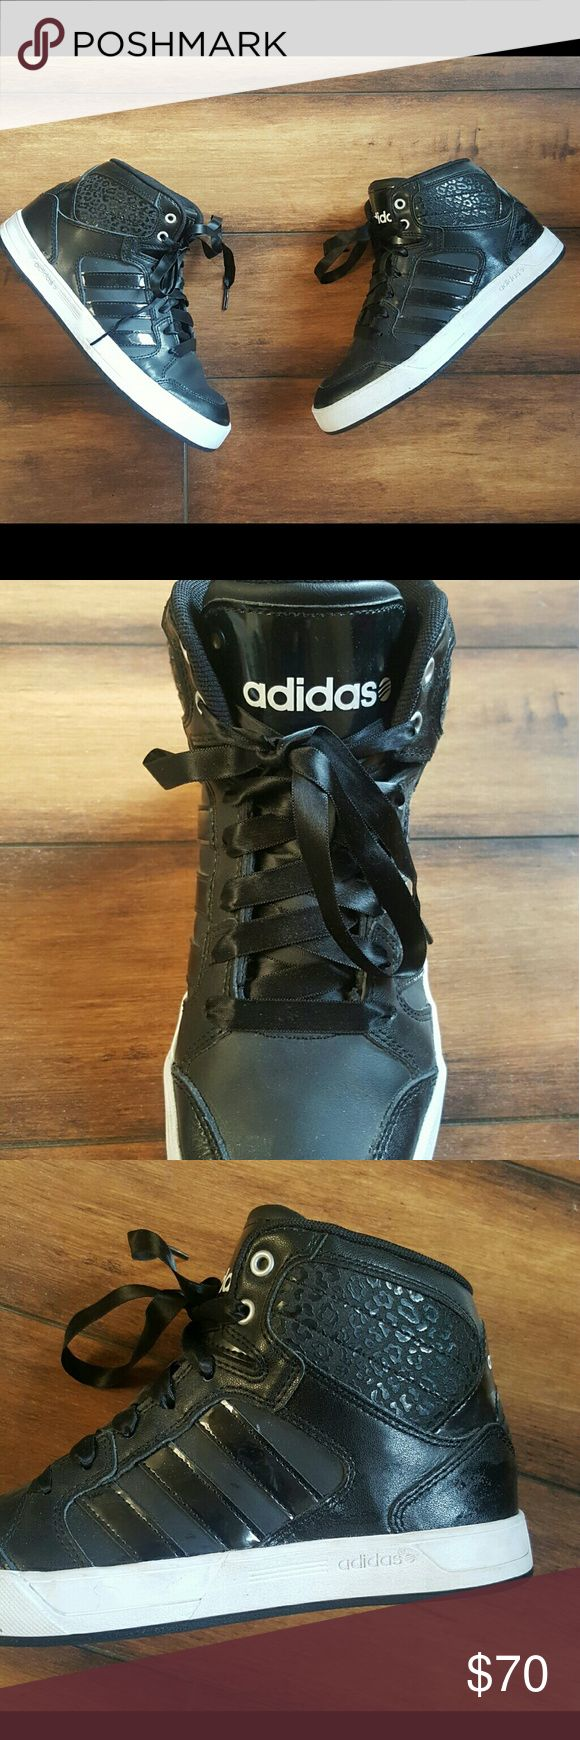 Adidas NEO hightops Black ADIDAS NEO Ortholite Hightops! Black ribbon laces, worn only a few times - great condition! Adidas Shoes Athletic Shoes